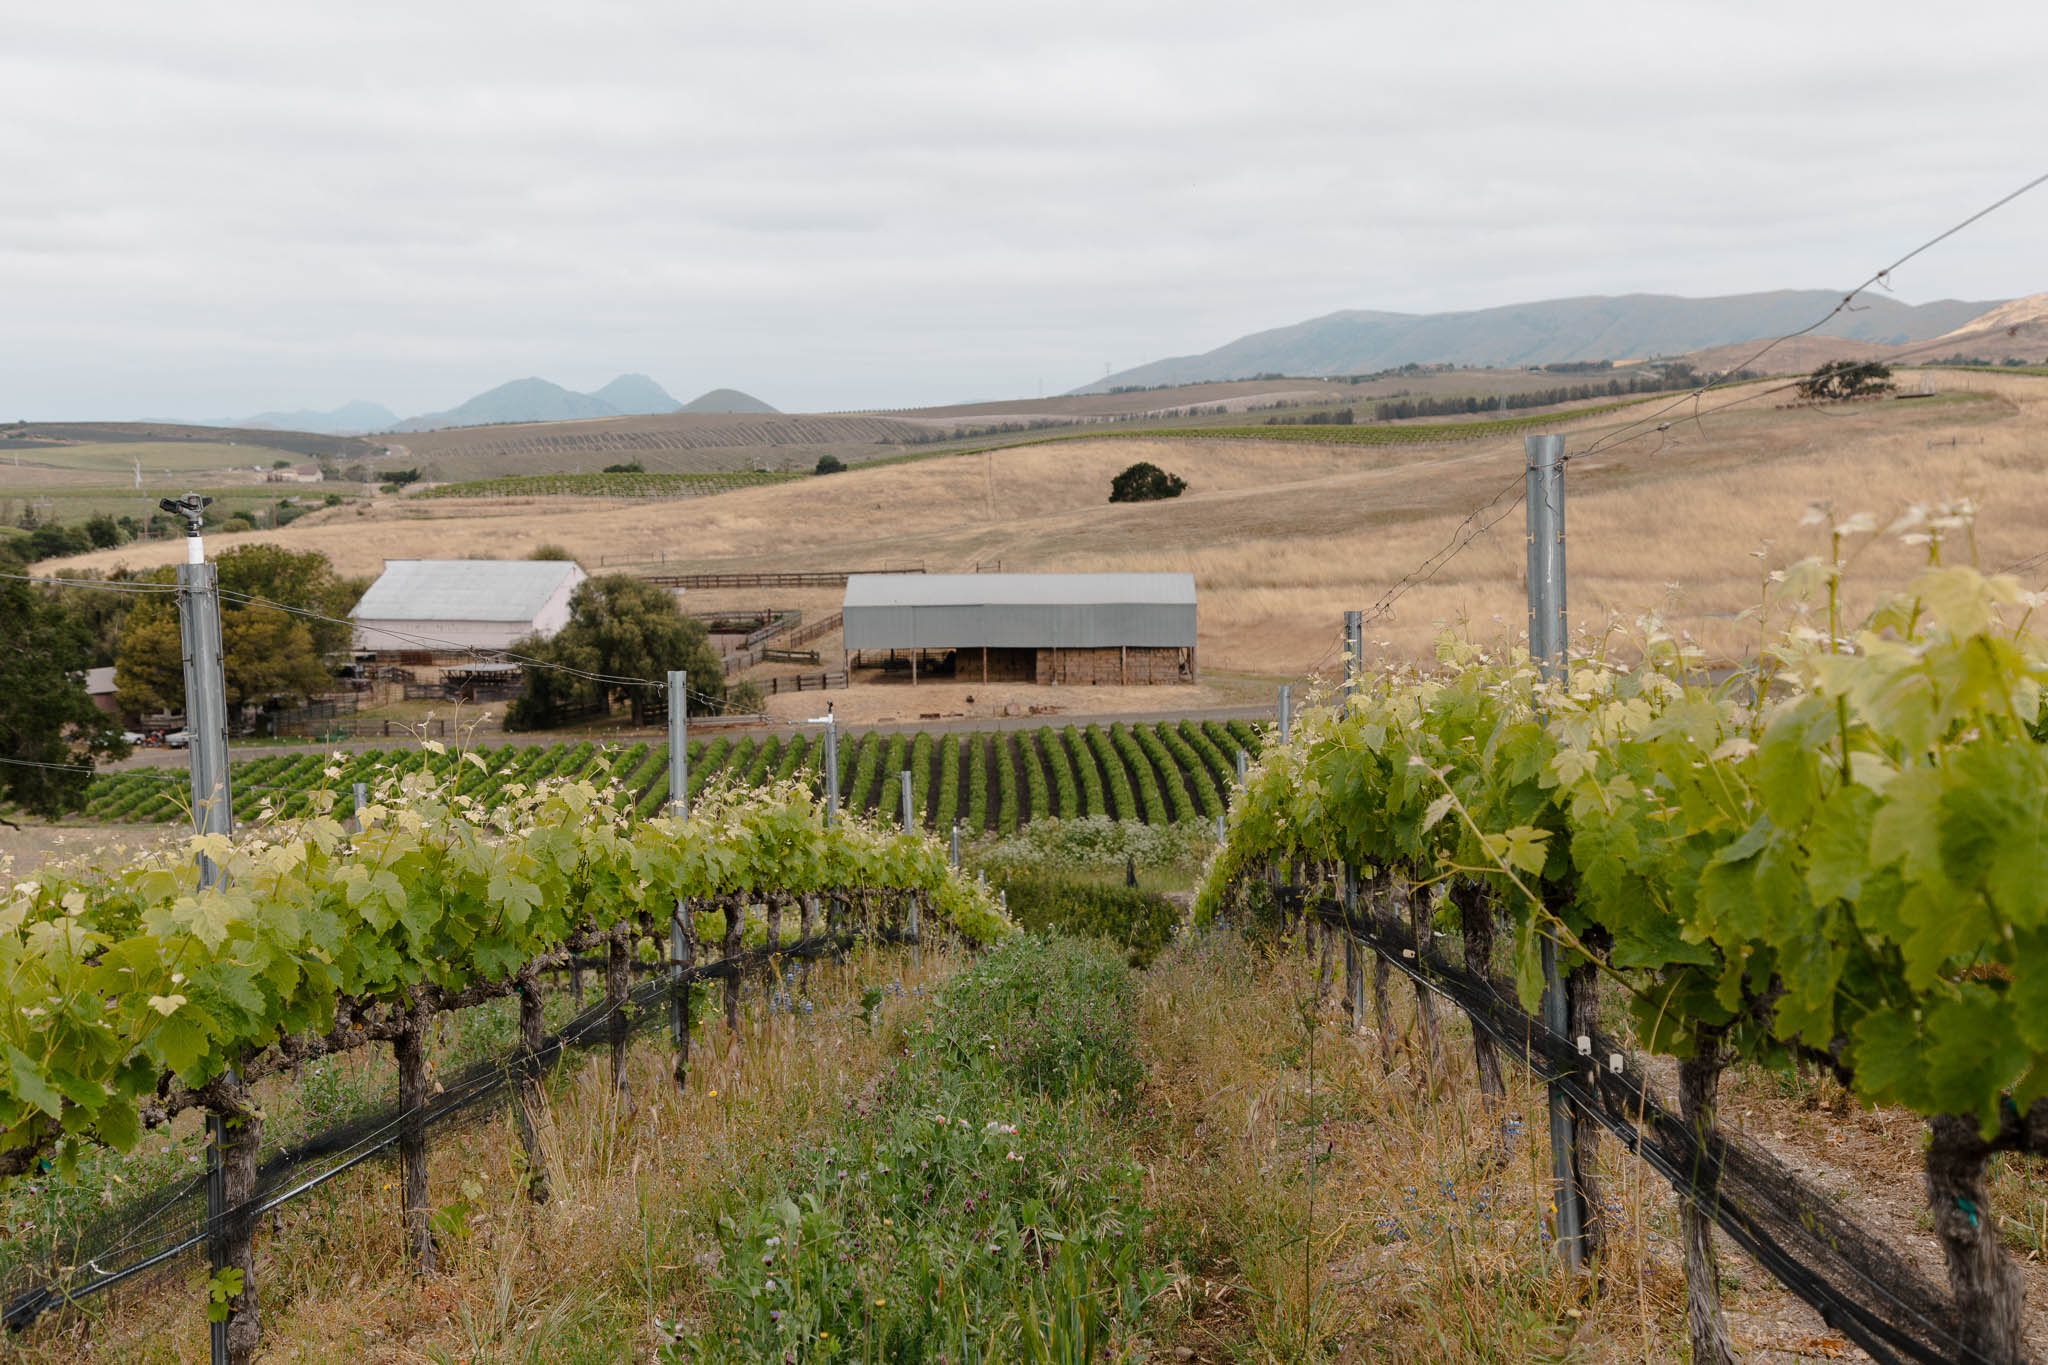 Photography of Cool Climate Morning in San Luis Obispo Wine Country Vineyards